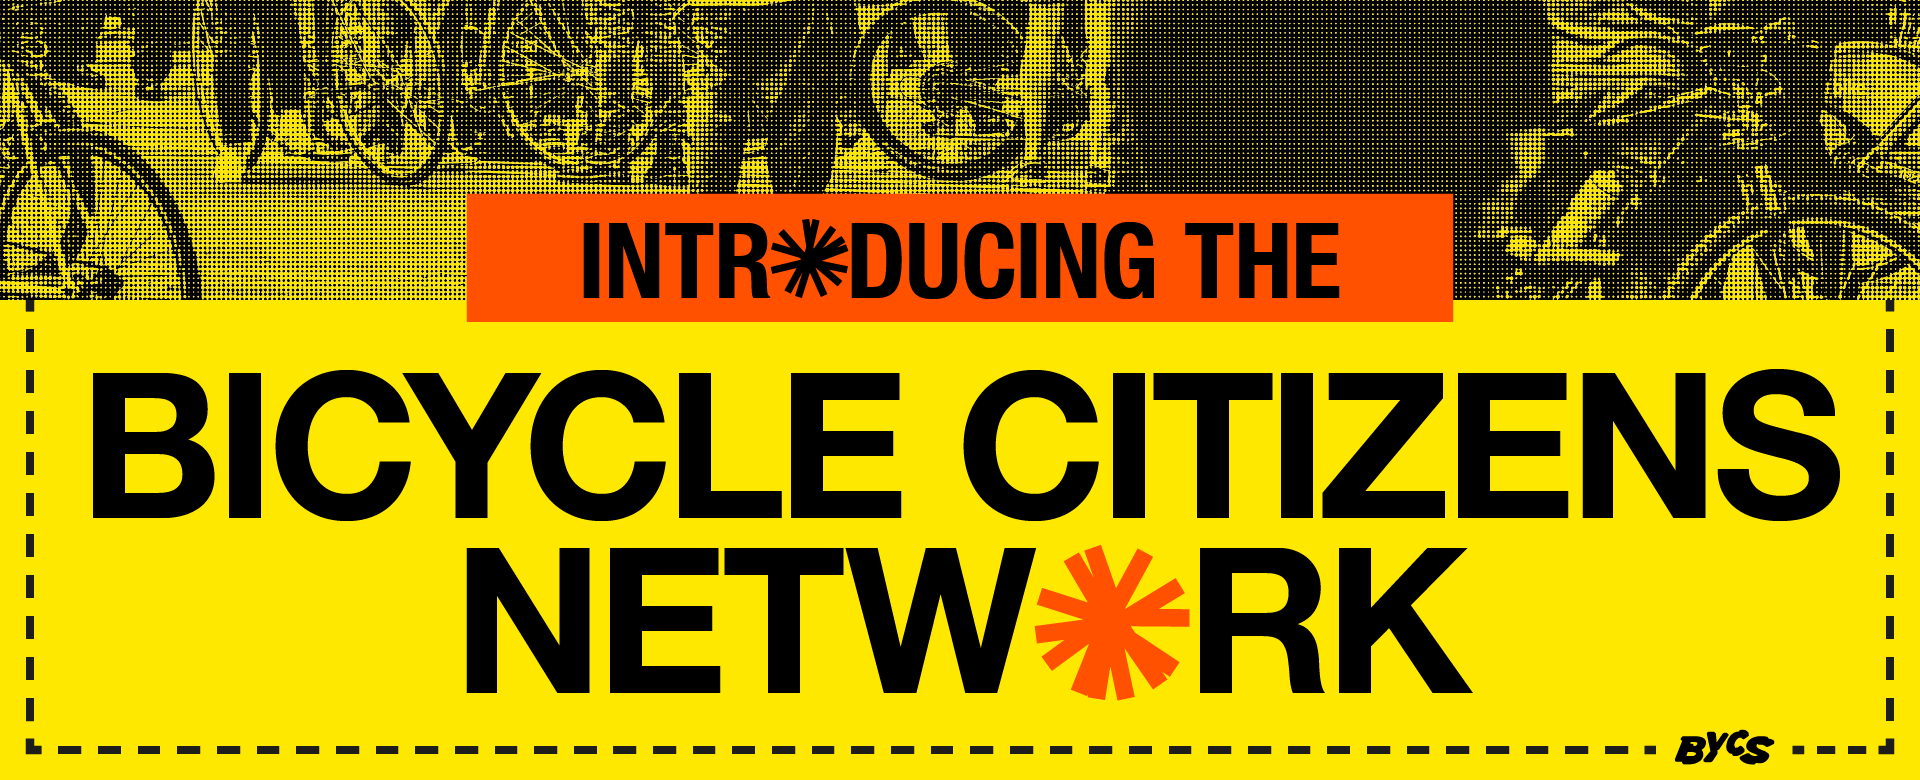 Introducing the Bicycle Citizens Network